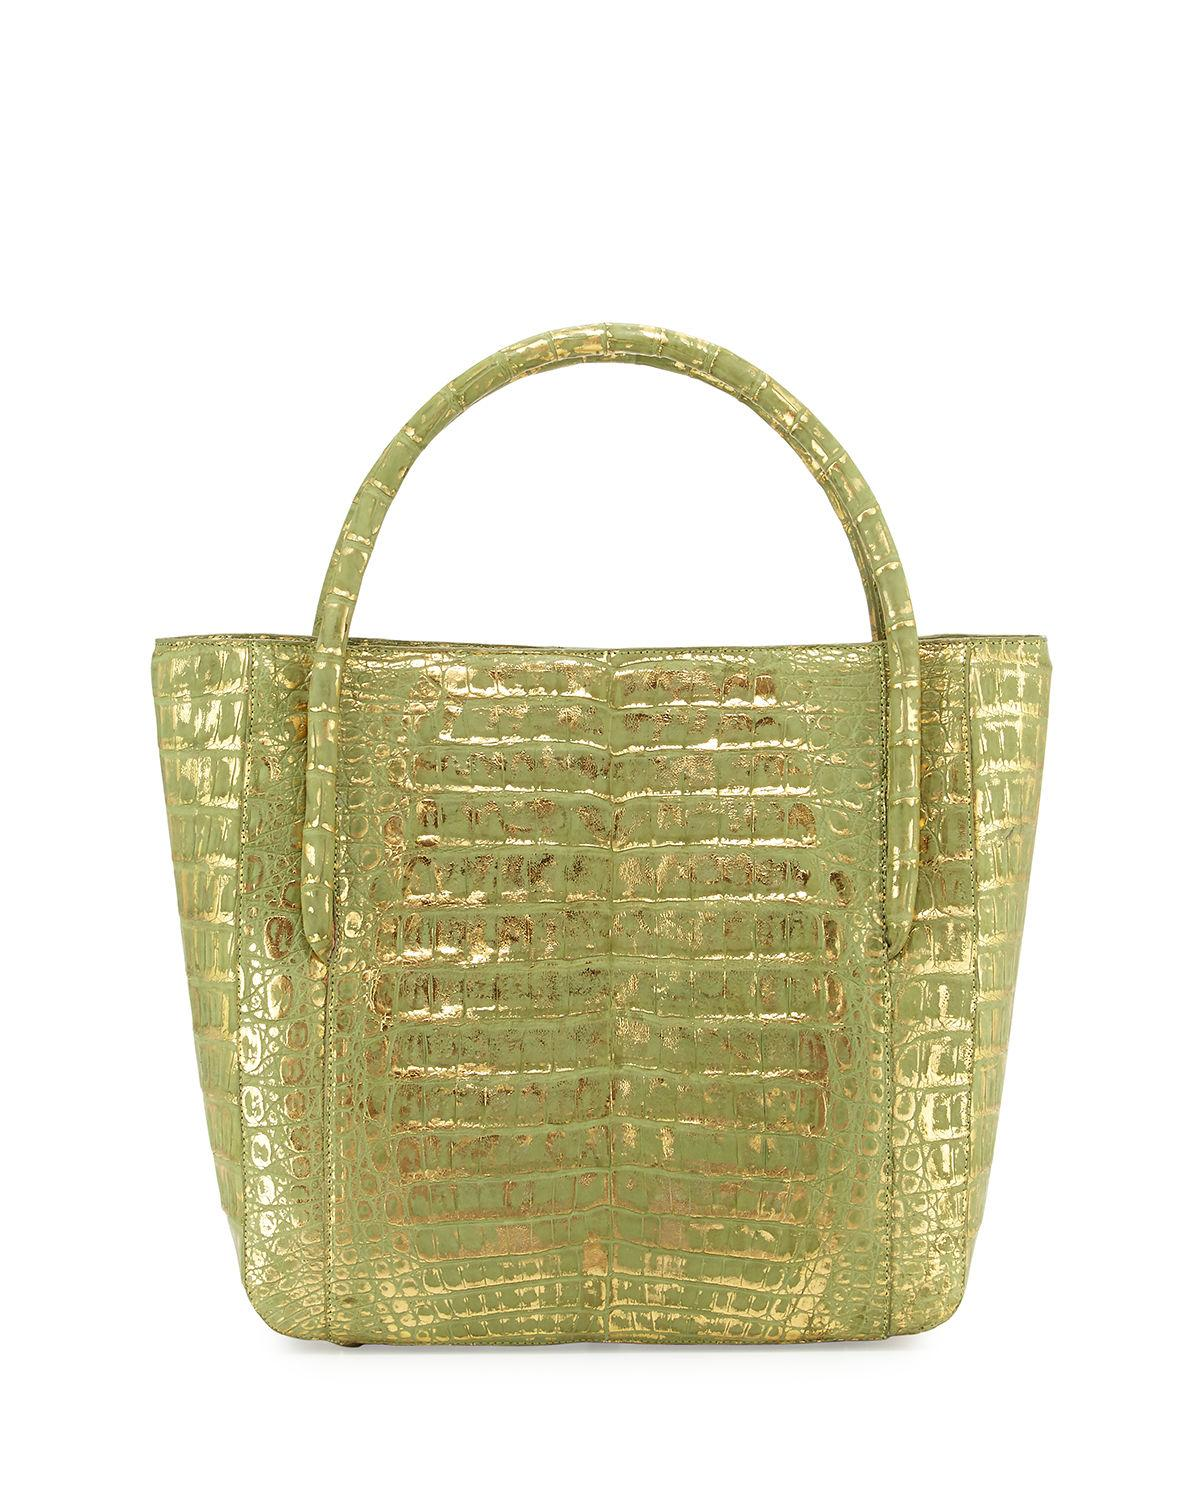 Nancy gonzalez crocodile square shopper tote bag in green for Nancy gonzalez crocodile tote